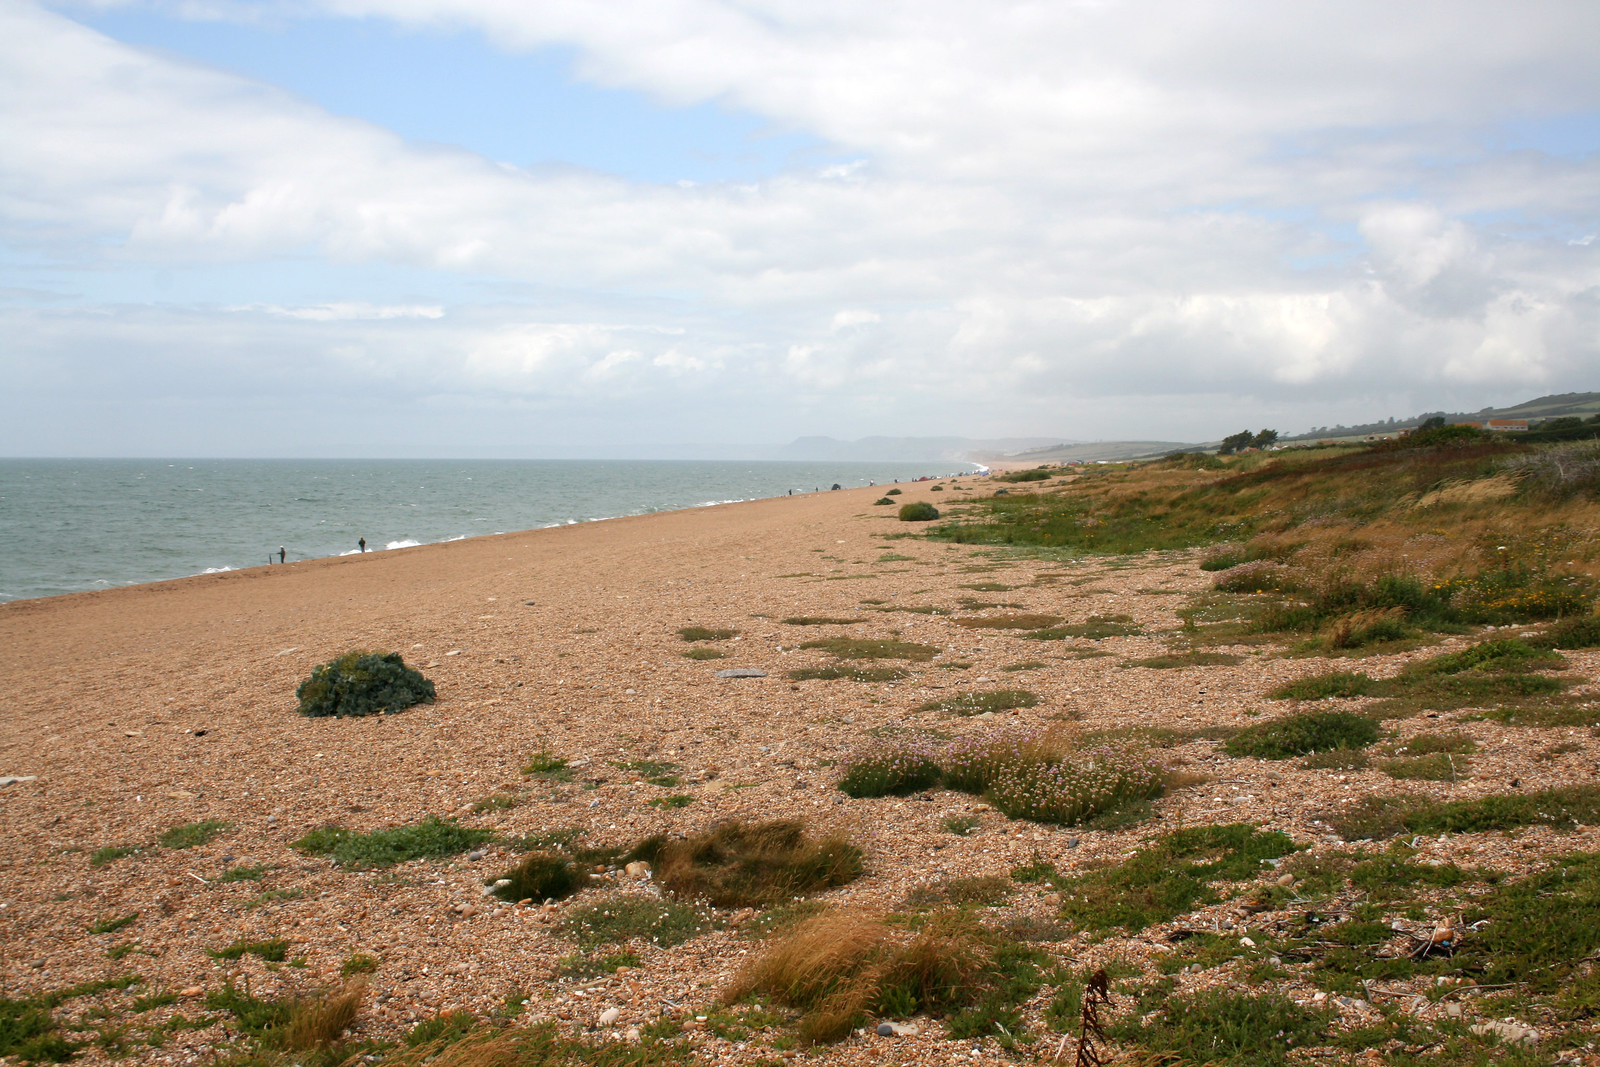 Chesil beach between Abbotsbury and West Bexington